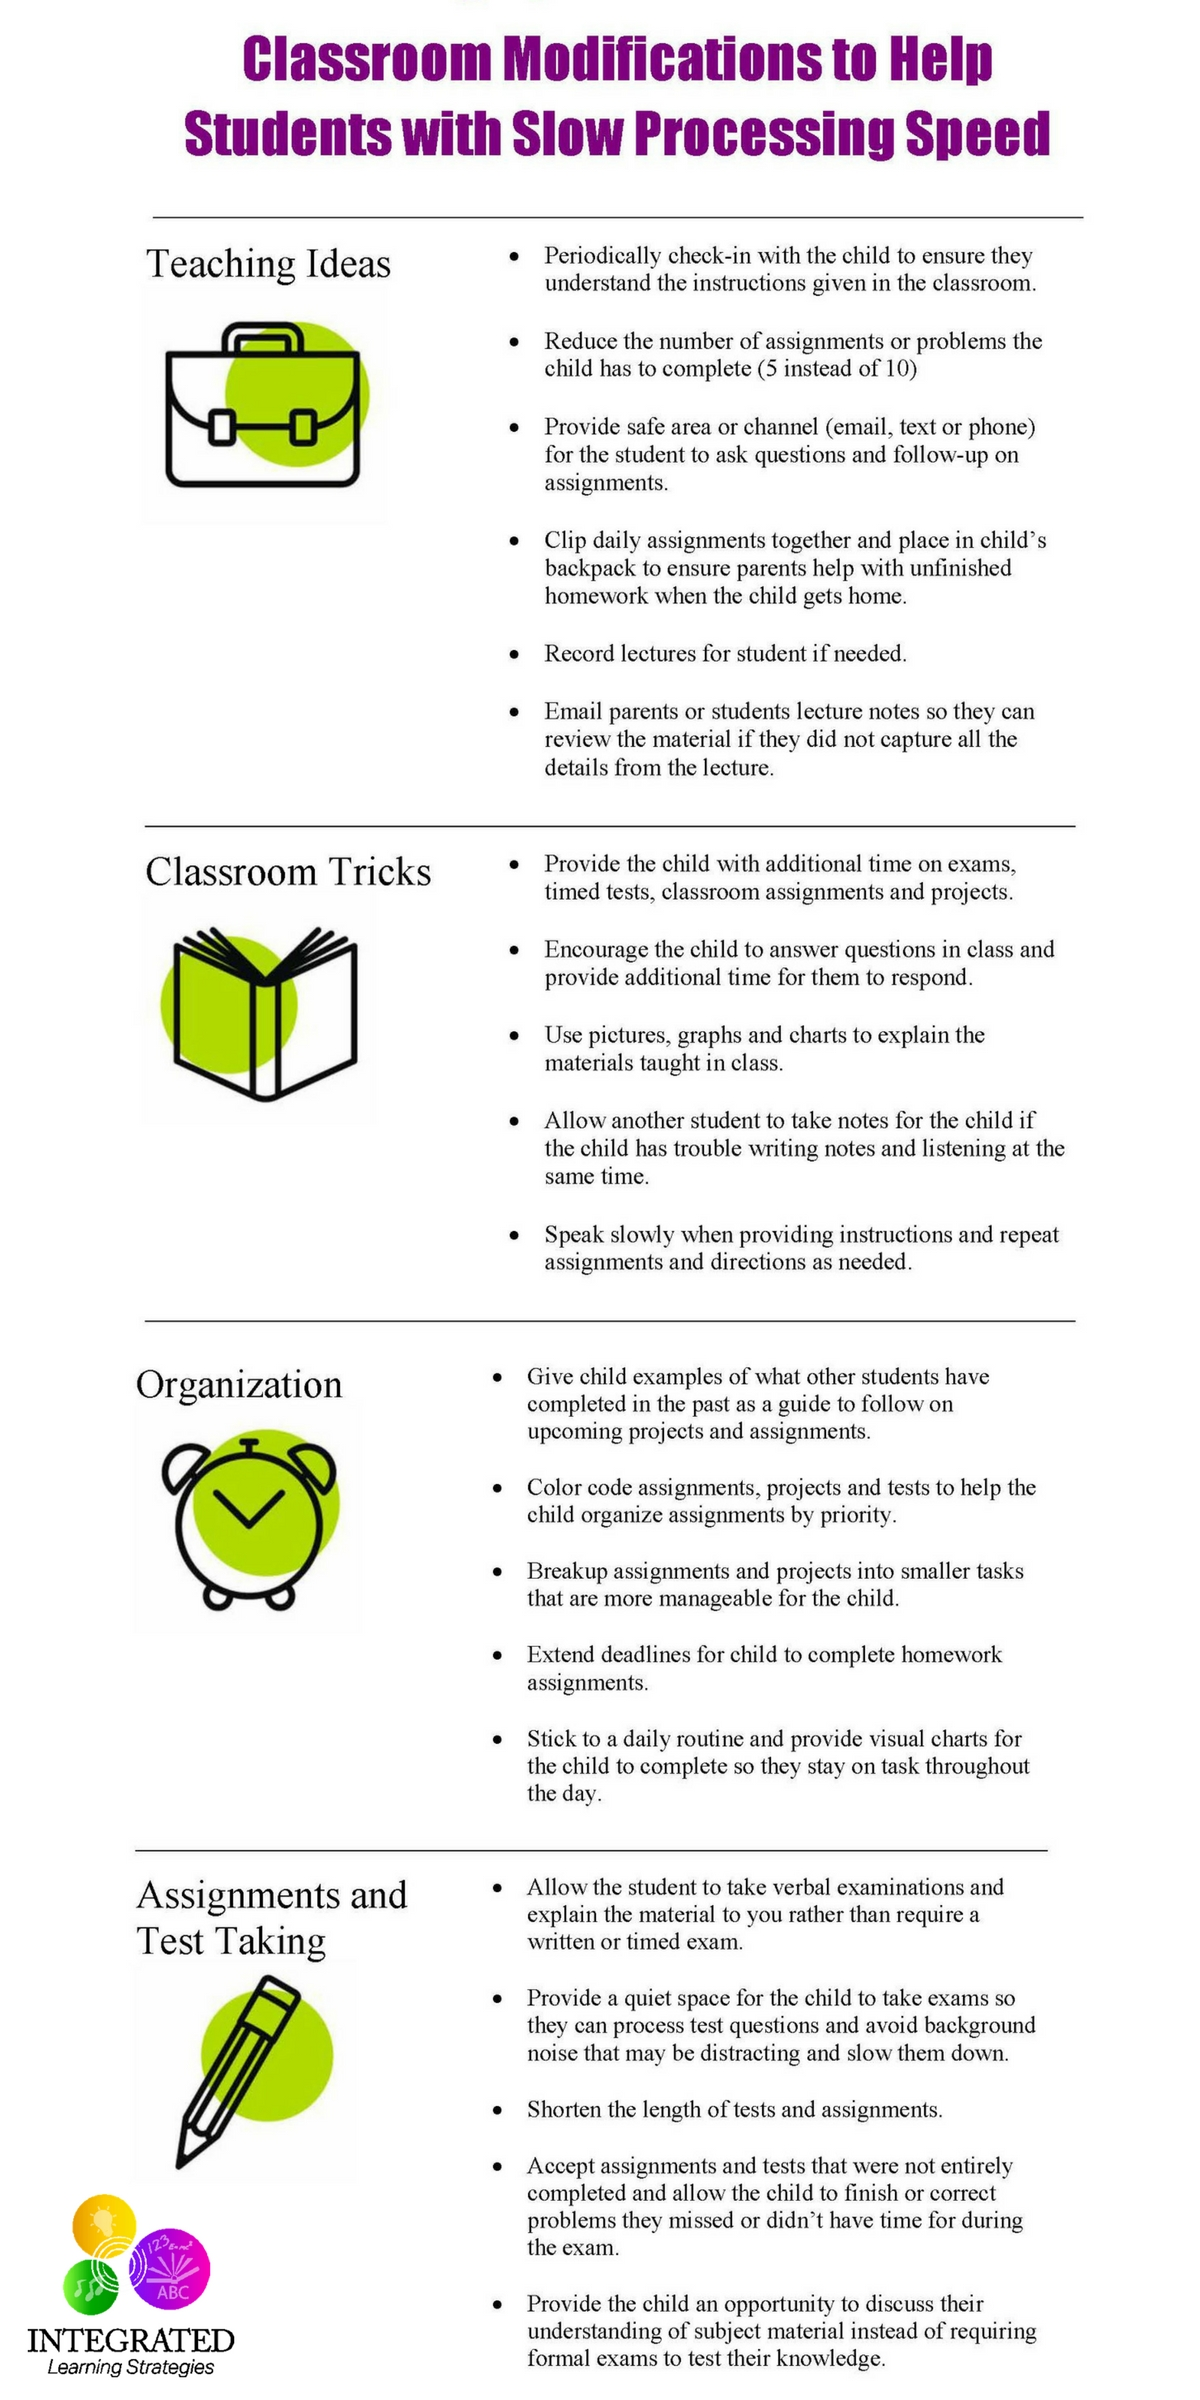 Classroom Modifications for Students that Struggle with Slow Processing Speed   ilslearningcorner.com